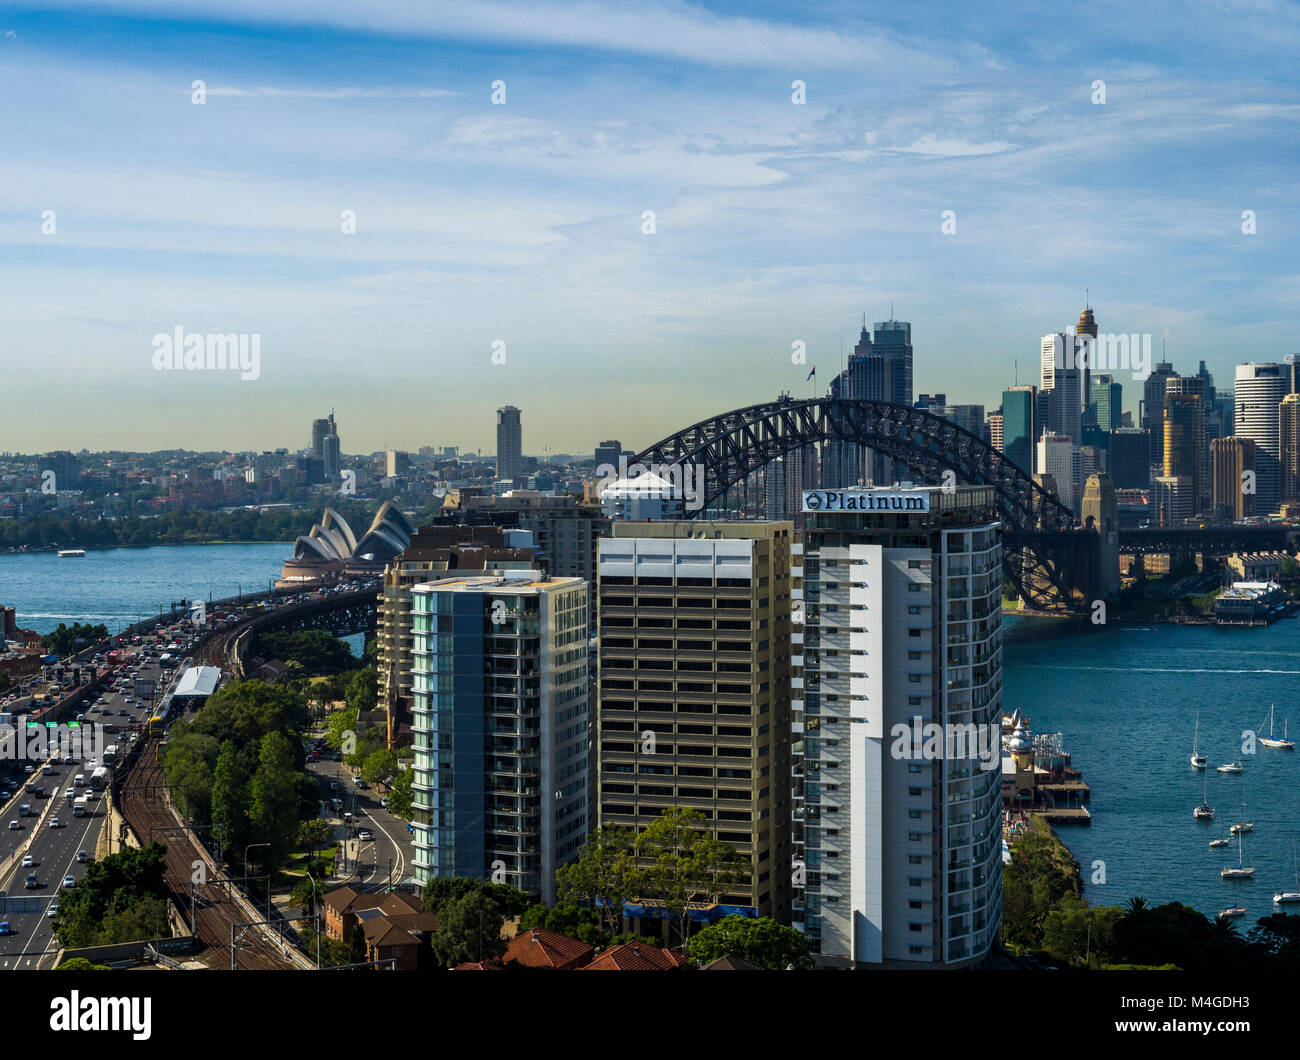 Sydney Harbour view from North Sydney, Sydney, New South Wales, Australia - Stock Image